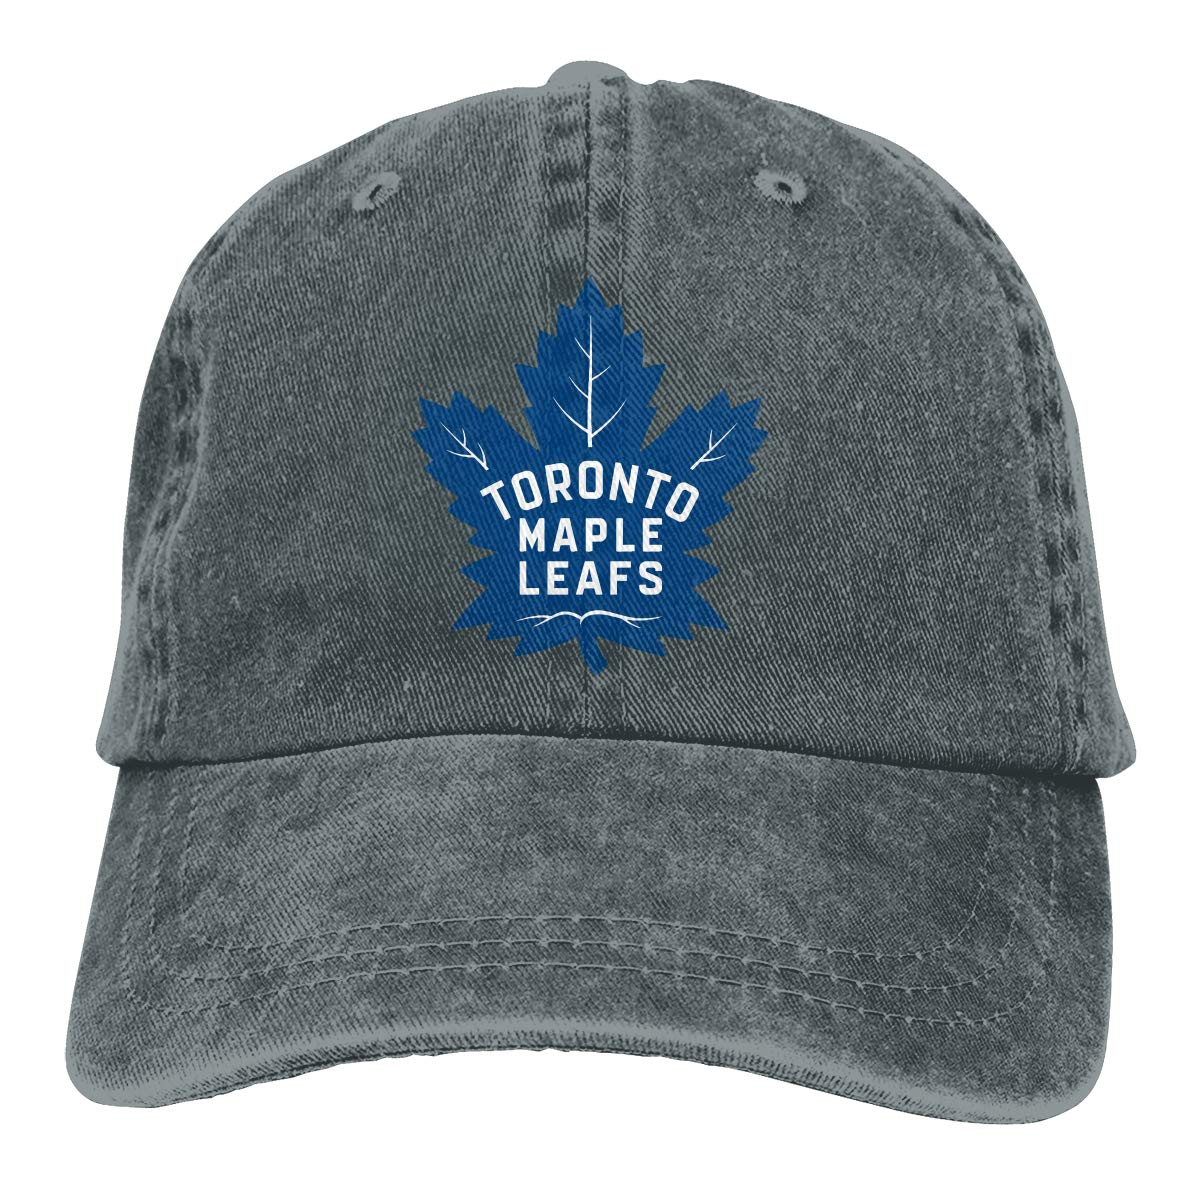 Smwkl0k2kw Toronto Maple Leafs Adult Sport Adjustable Cowboy Hat